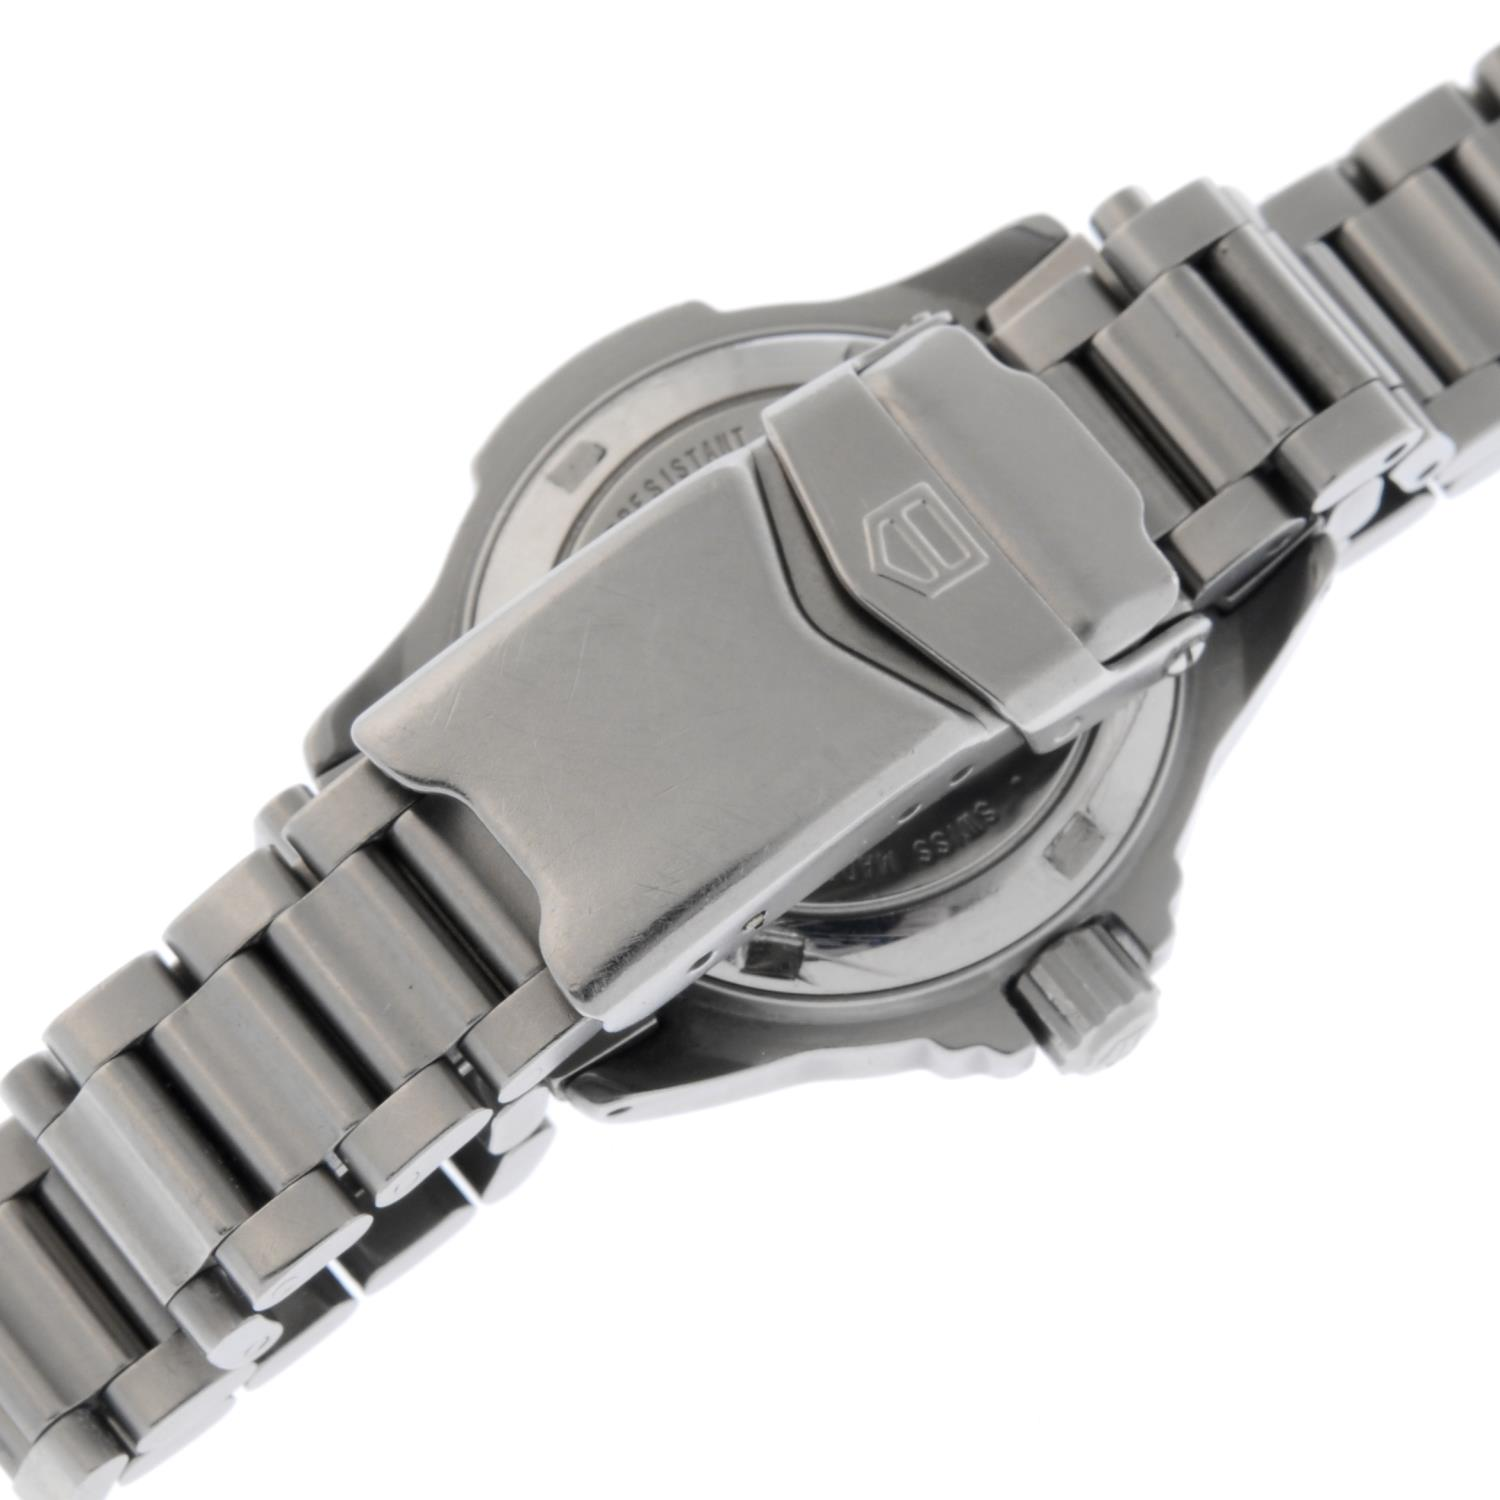 TAG HEUER - a 4000 Series bracelet watch. - Image 2 of 5